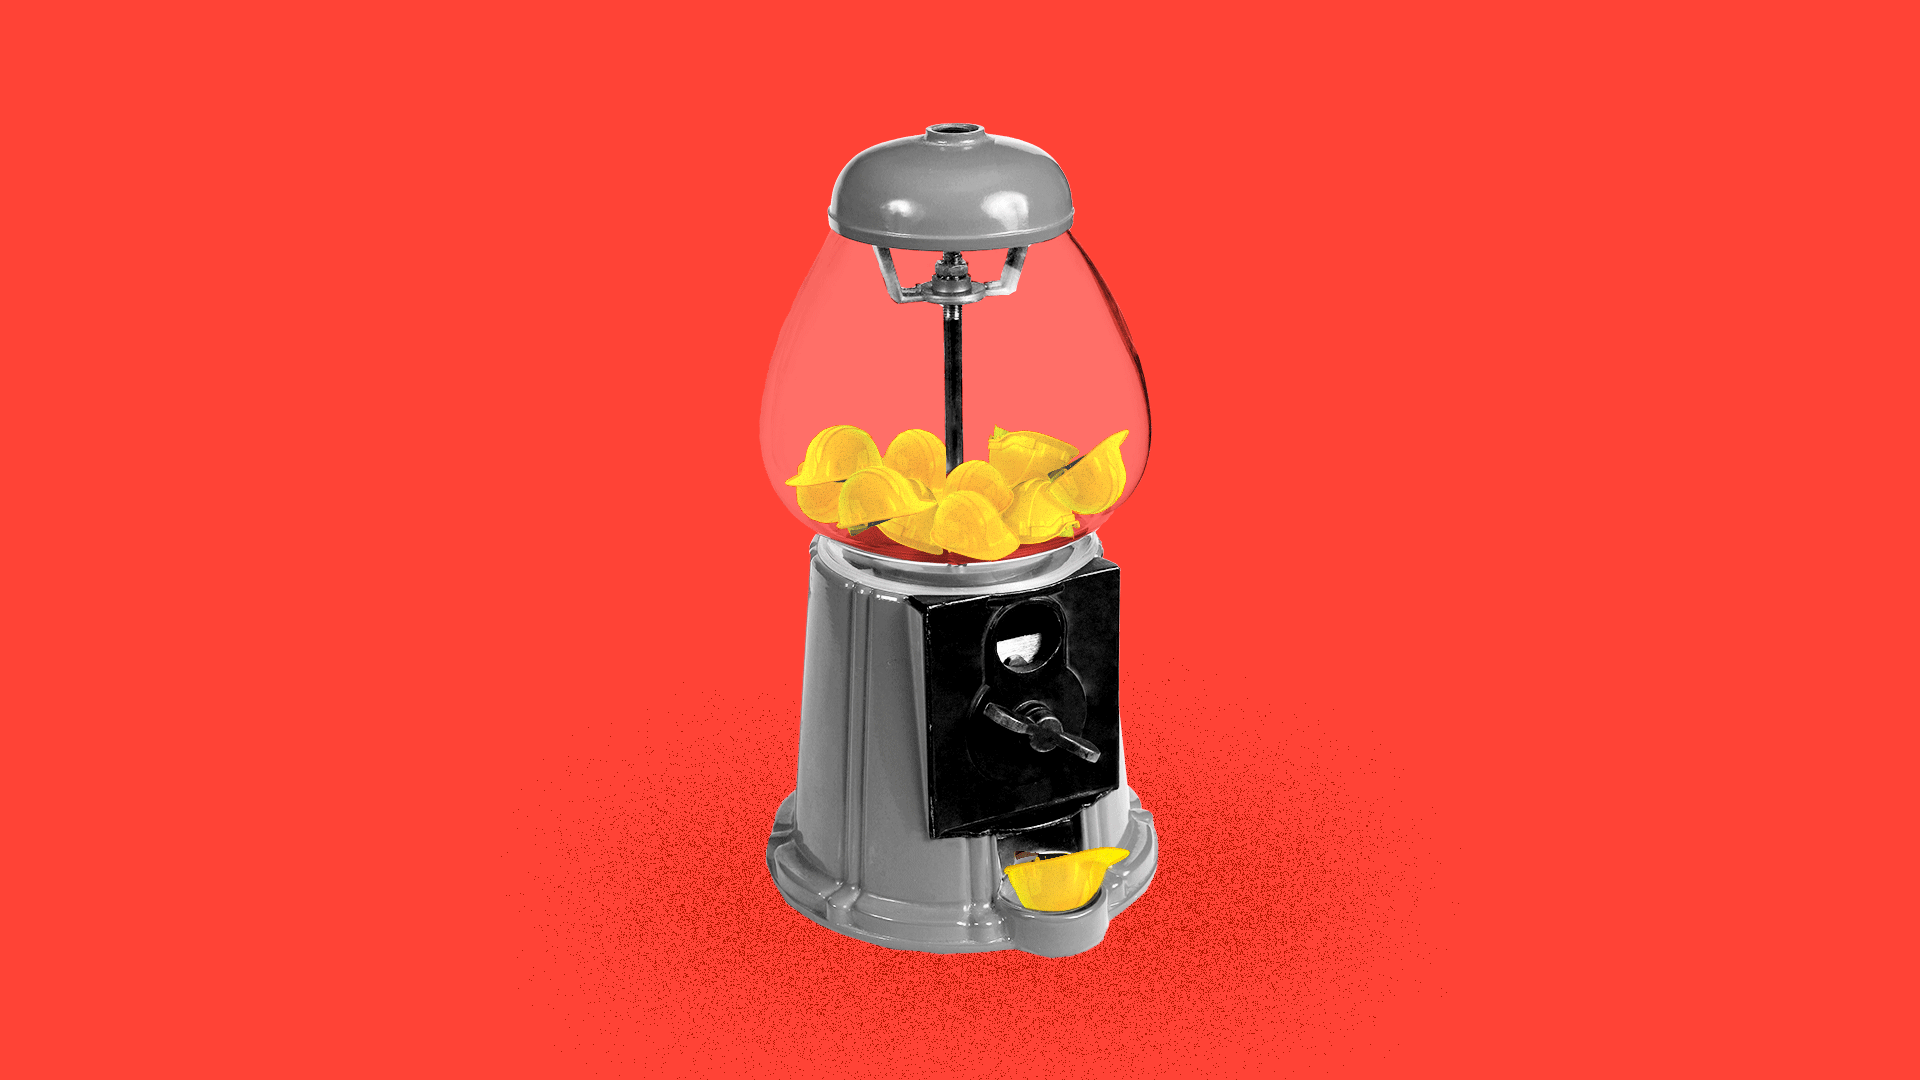 Illustration of yellow hard hats being dispensed from a near-empty candy machine.